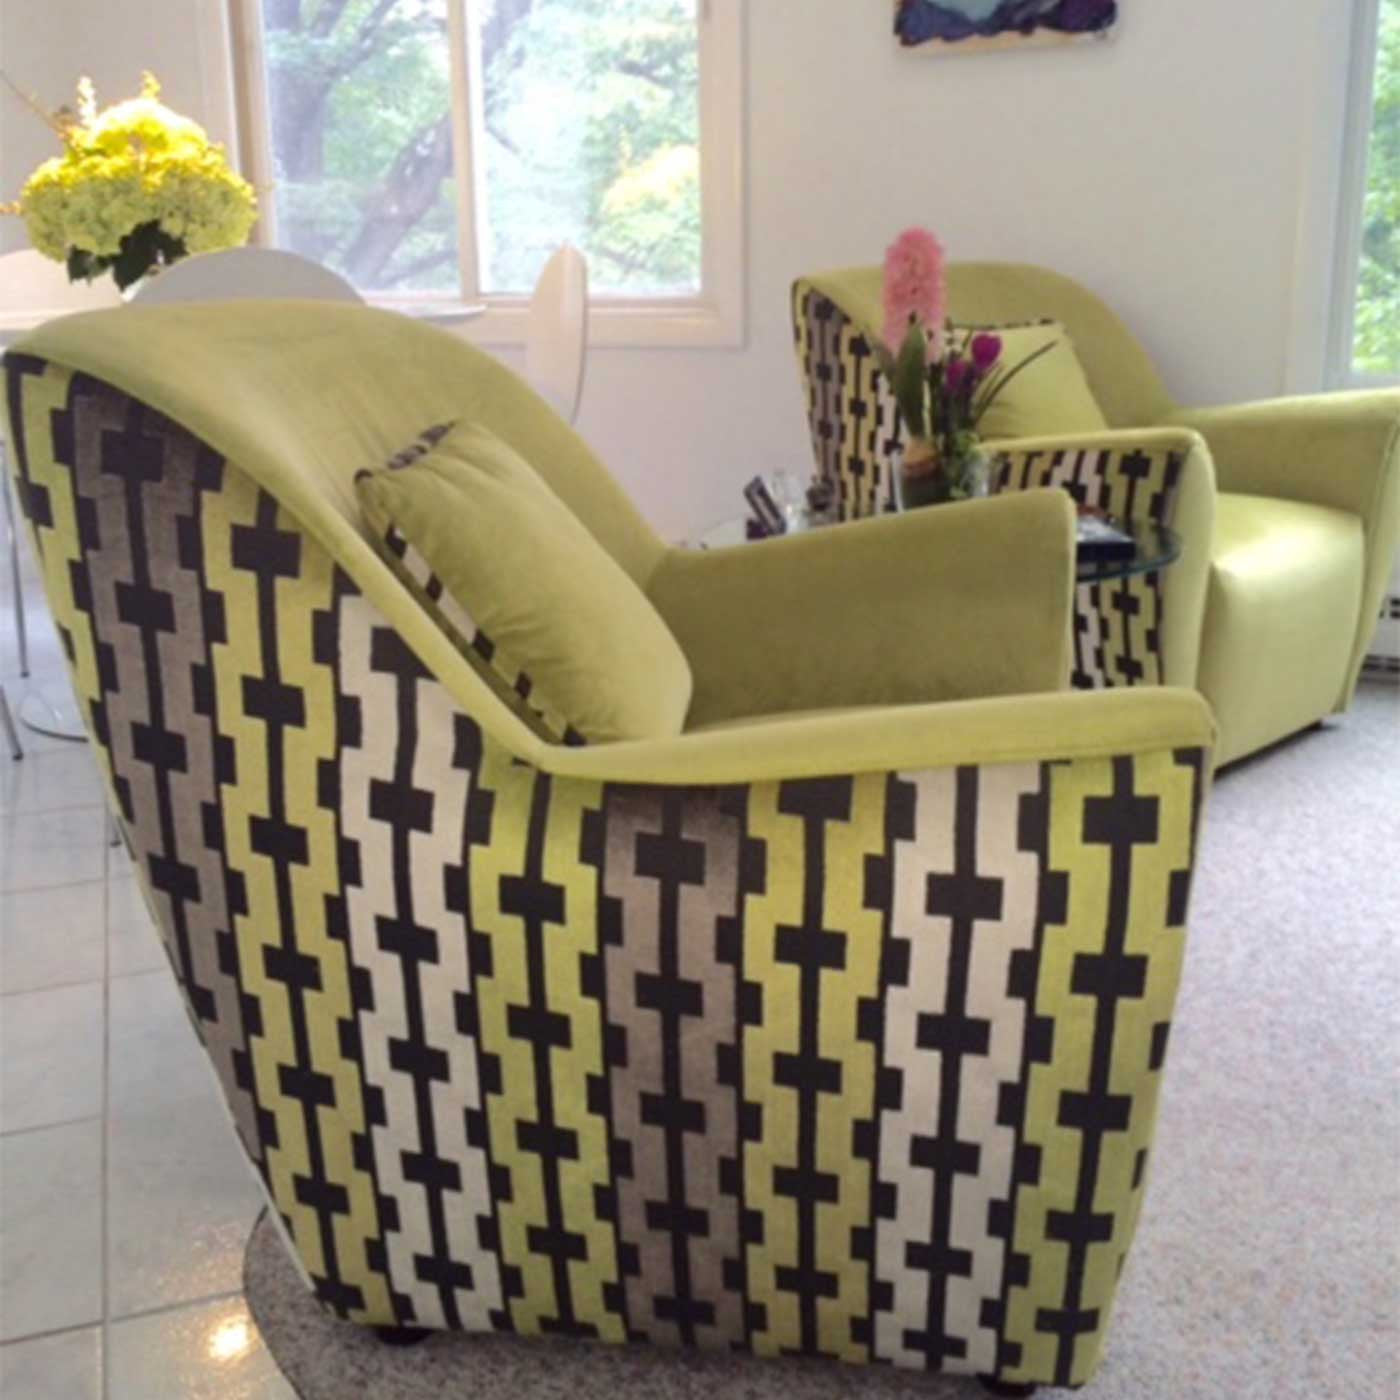 Upholstery Fabric Projects - Before and After - Donna